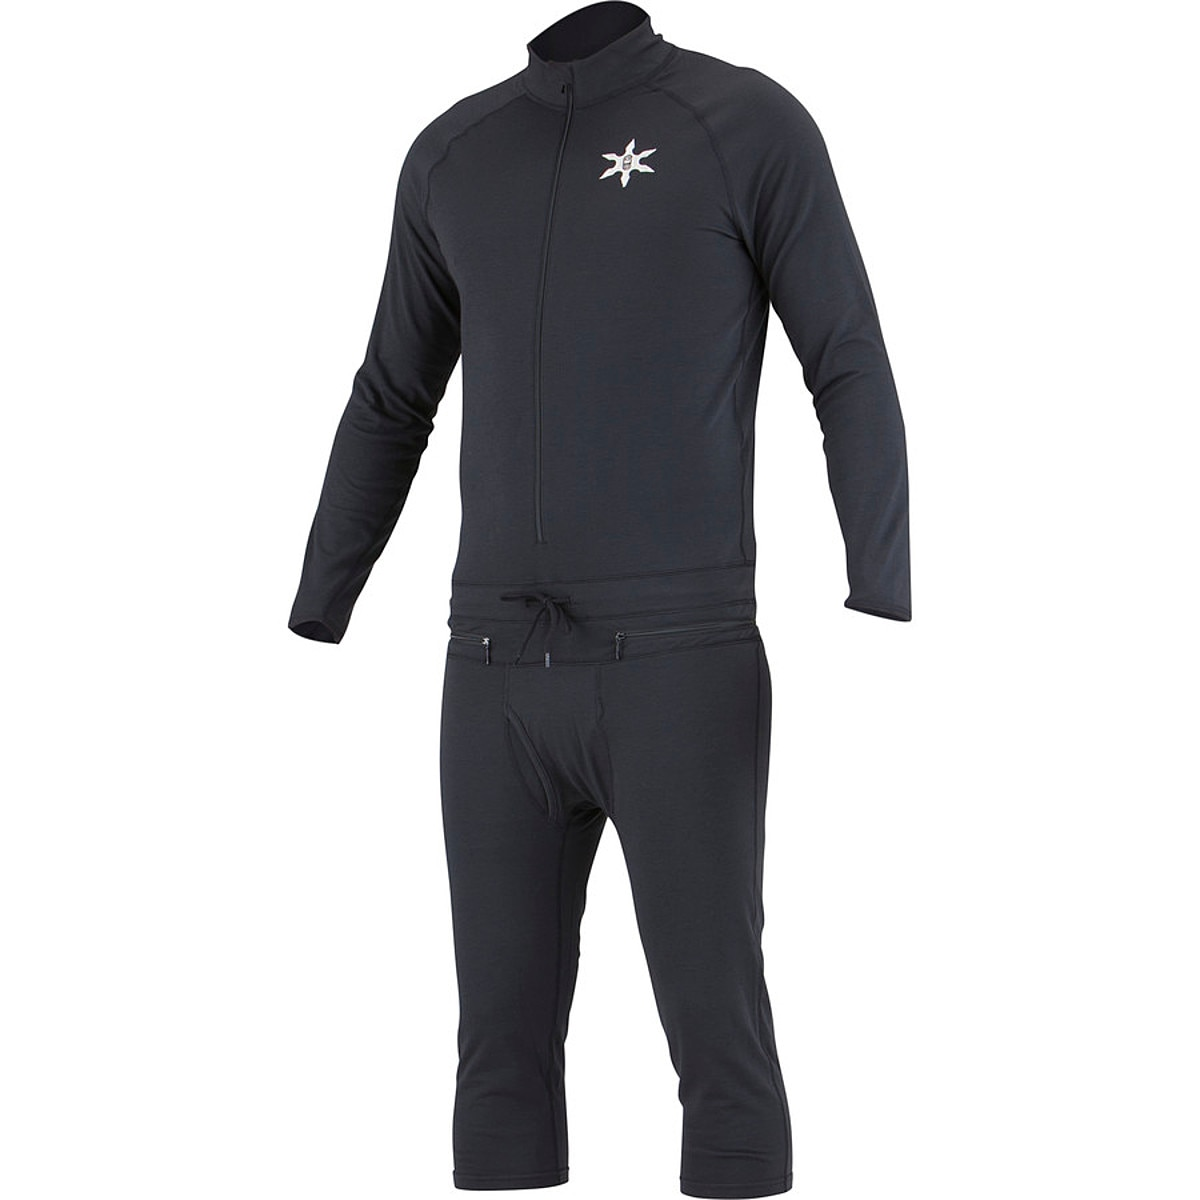 photo: Airblaster Men's Hoodless Ninja Suit